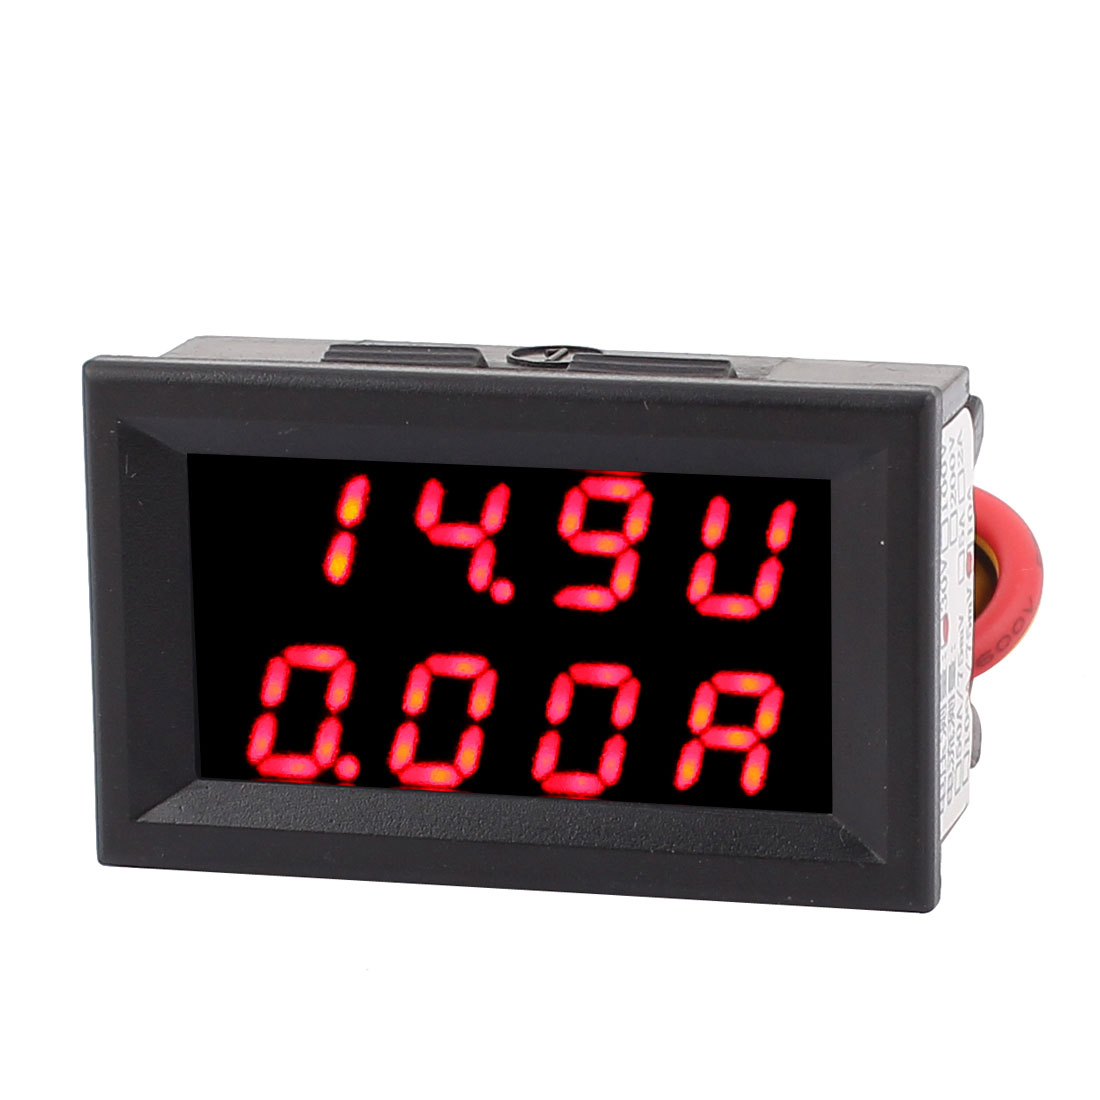 DC 0-30V 0-10A Red LED Dual Digital Panel Voltmeter Ammeter Meter 2IN1